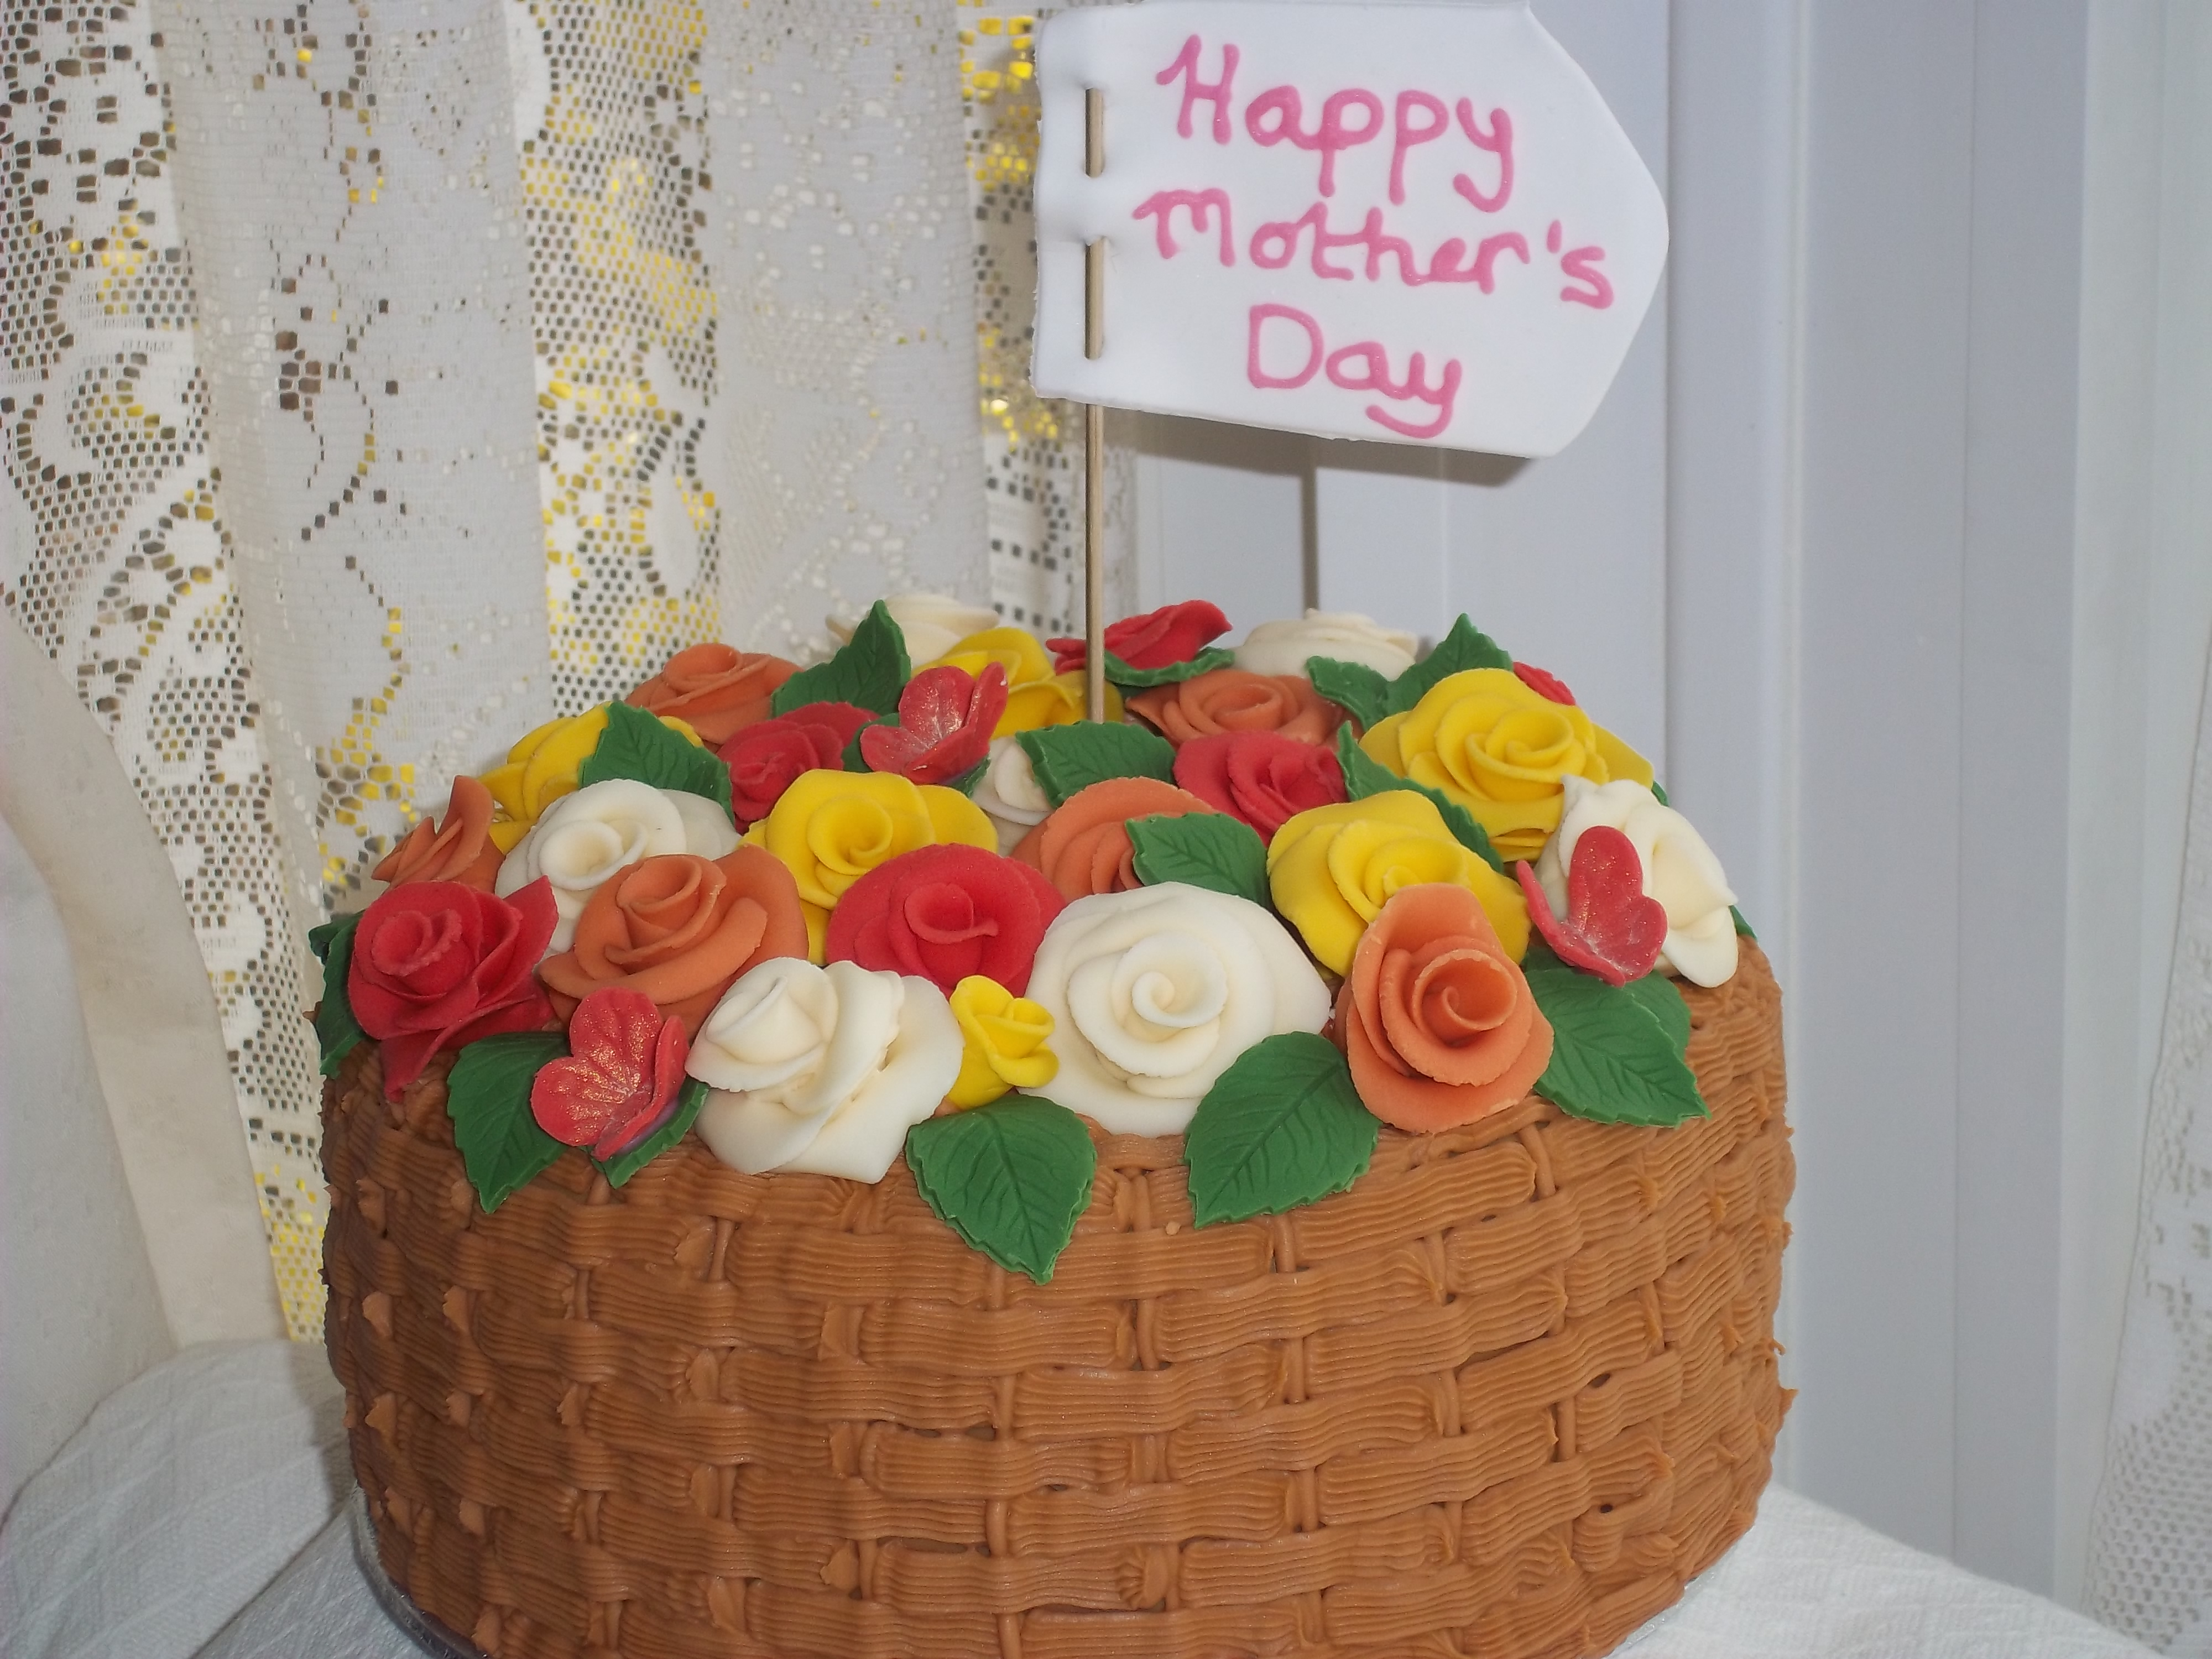 Flower Basket Mothers Day Cake : Mothers day basket of roses jan s occasional cakes